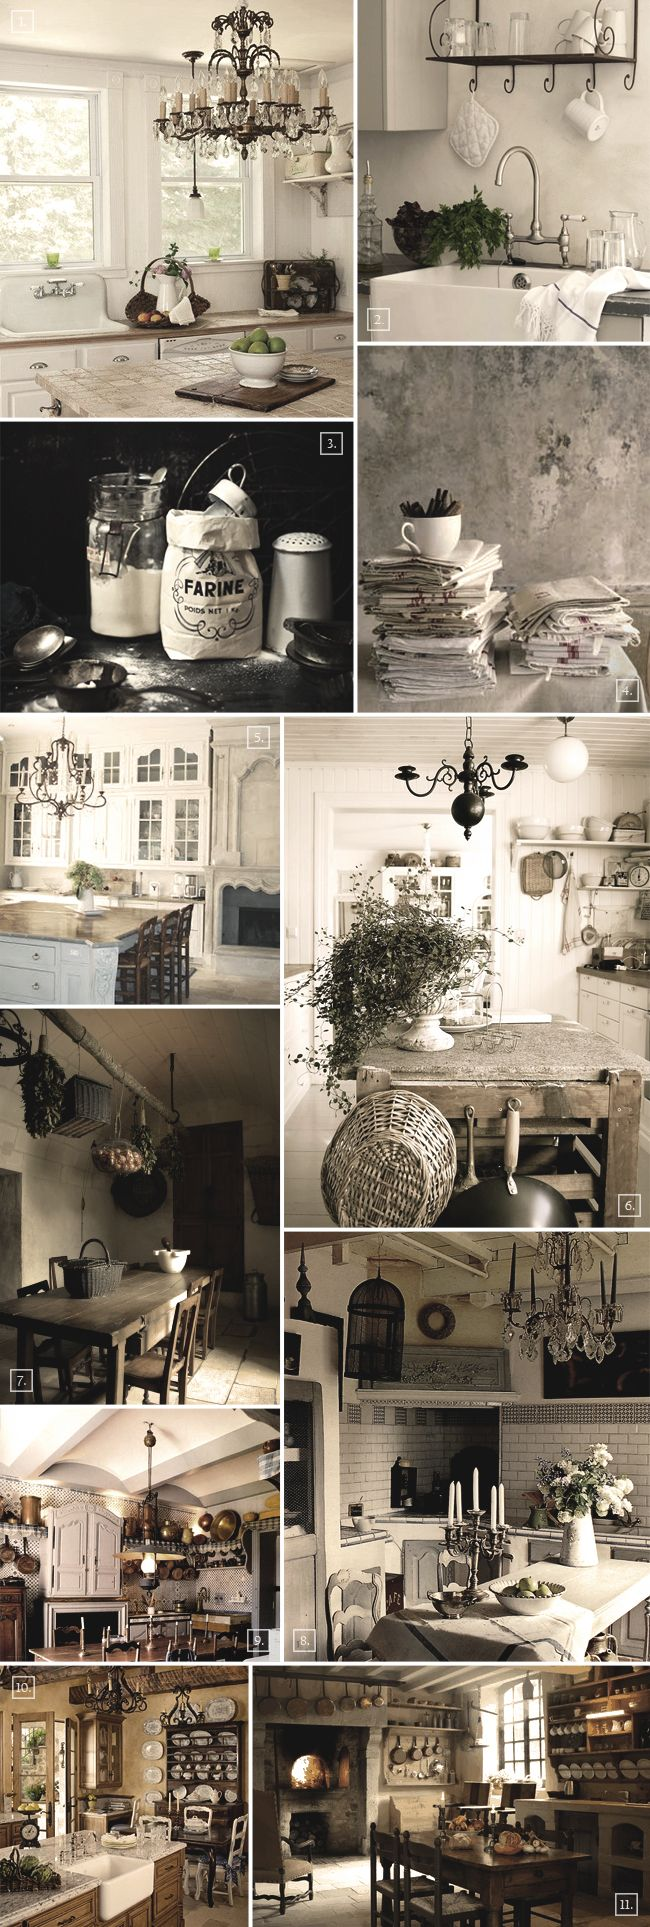 Best 25+ French Country Decorating Ideas On Pinterest | French Country,  Country Bathroom Design Ideas And Country Grey Bathrooms